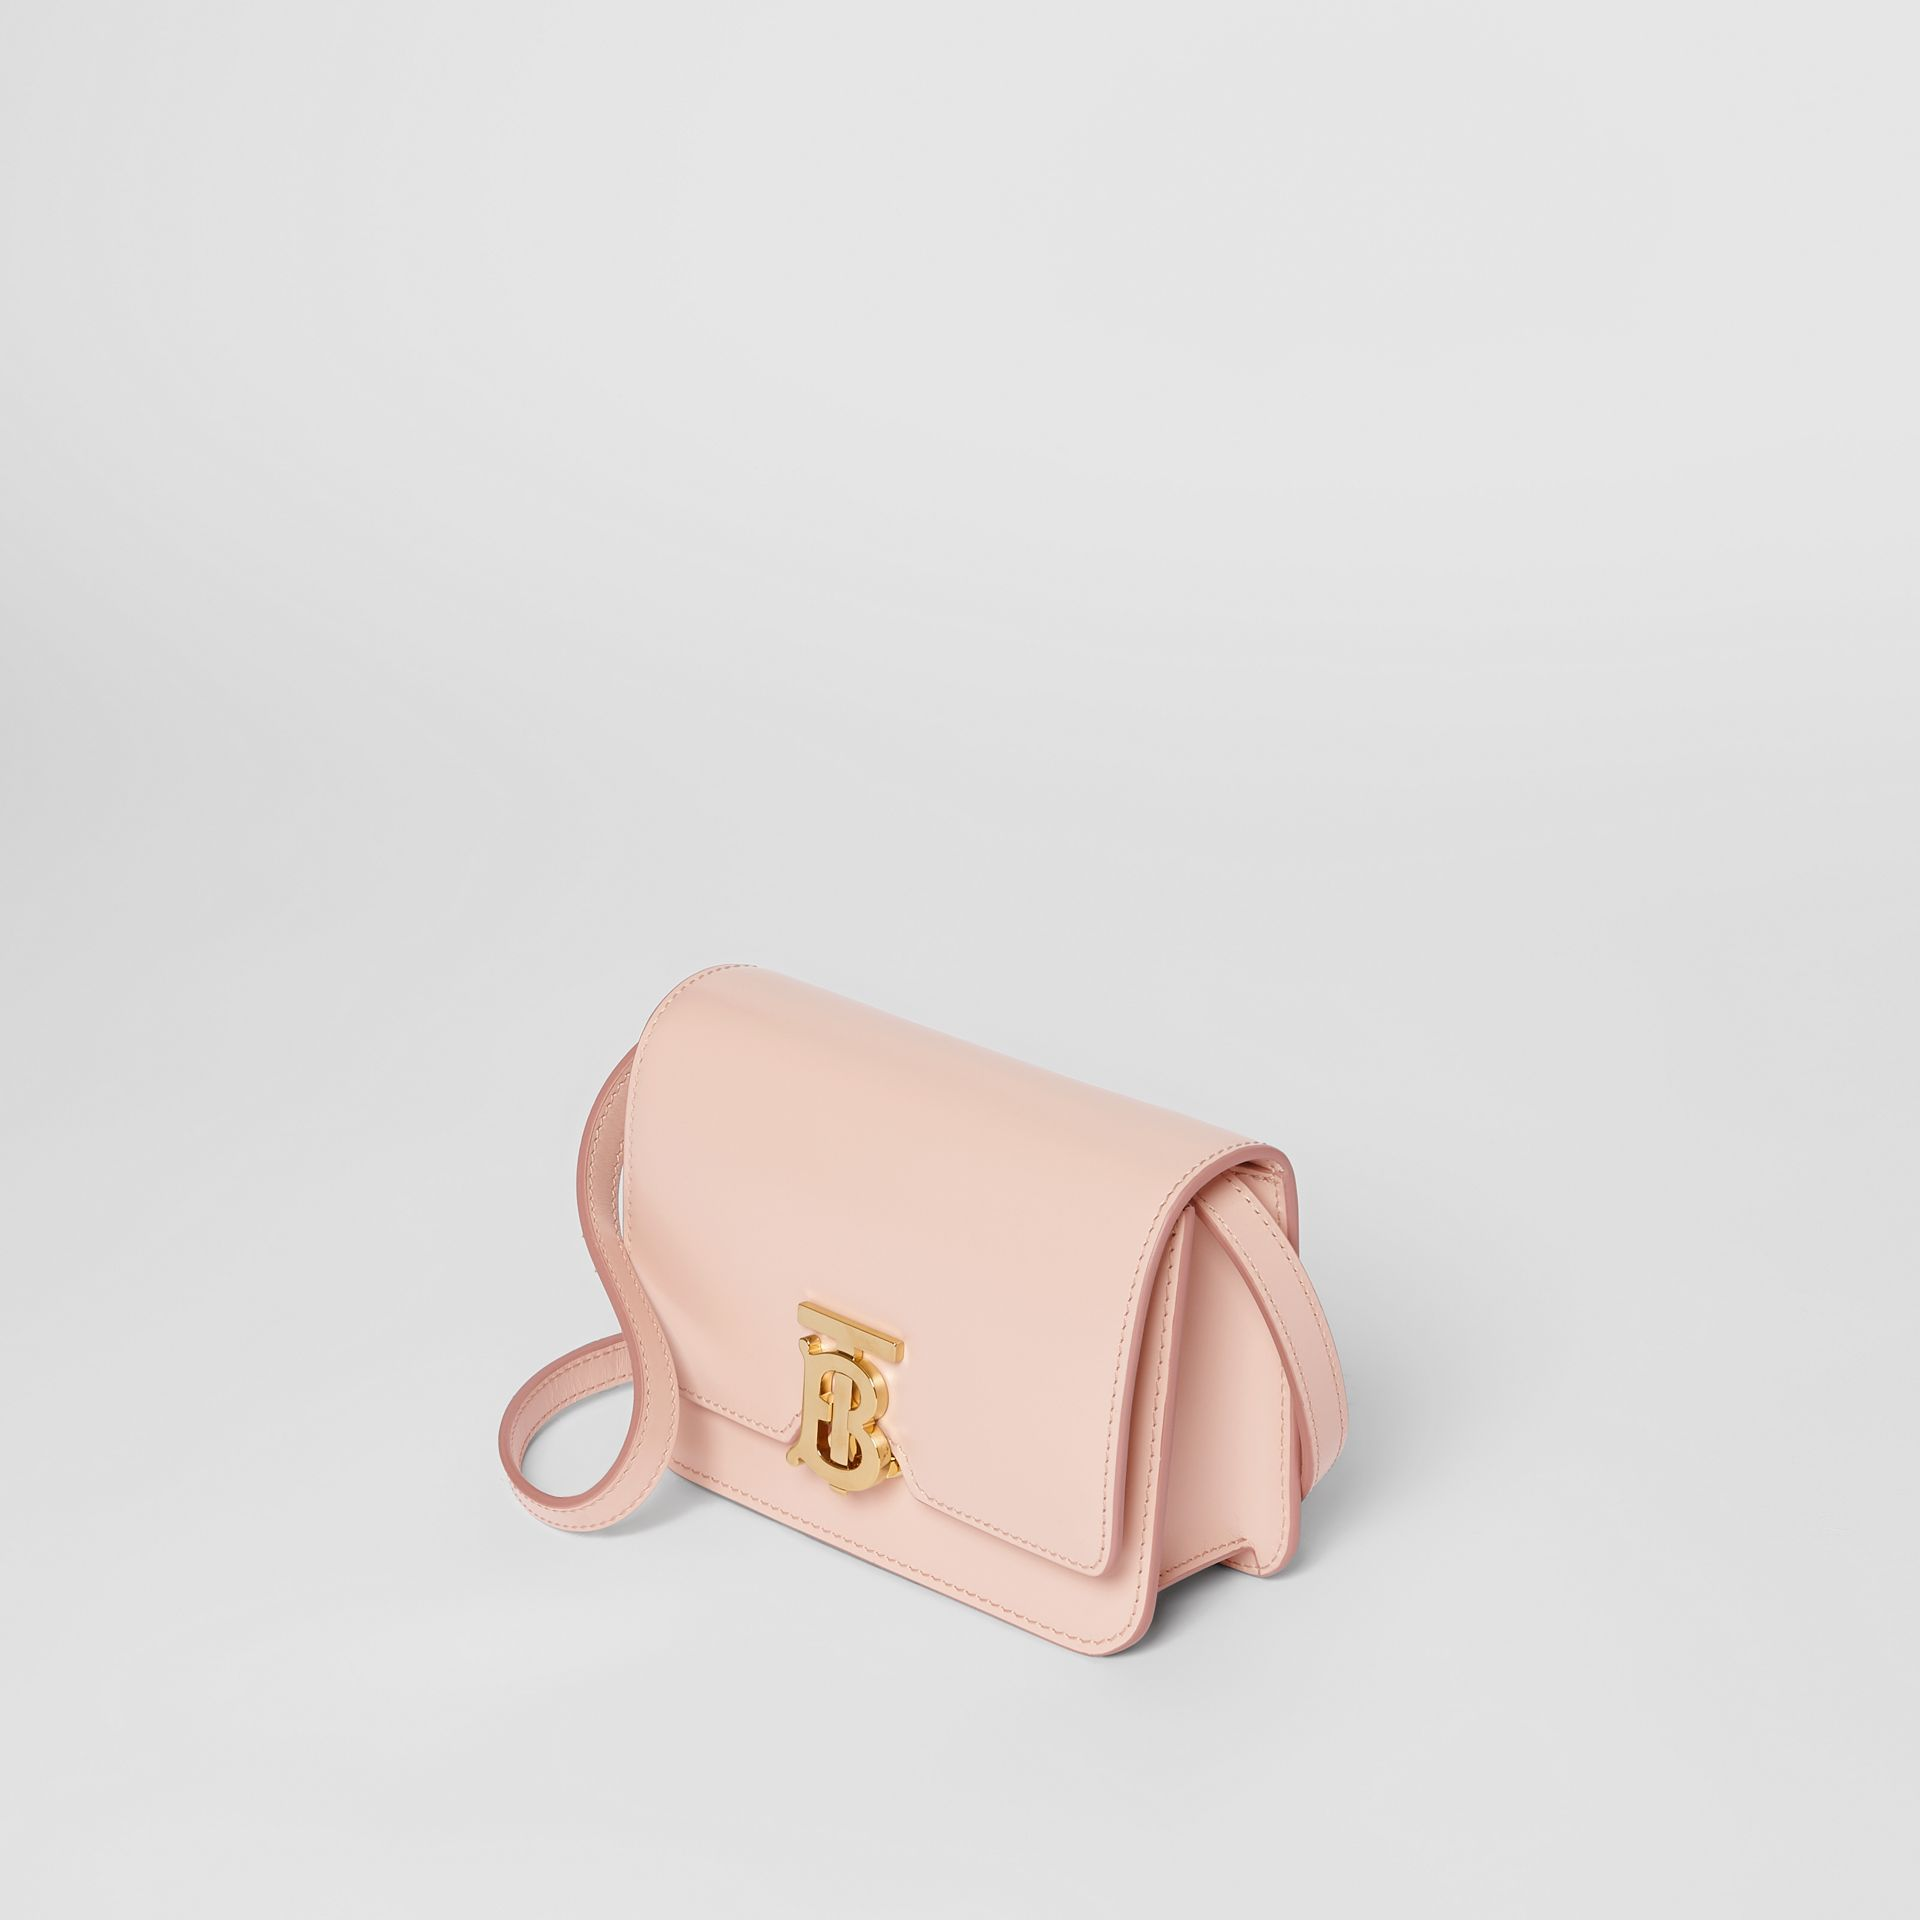 Mini Leather TB Bag in Rose Beige - Women | Burberry United States - gallery image 3